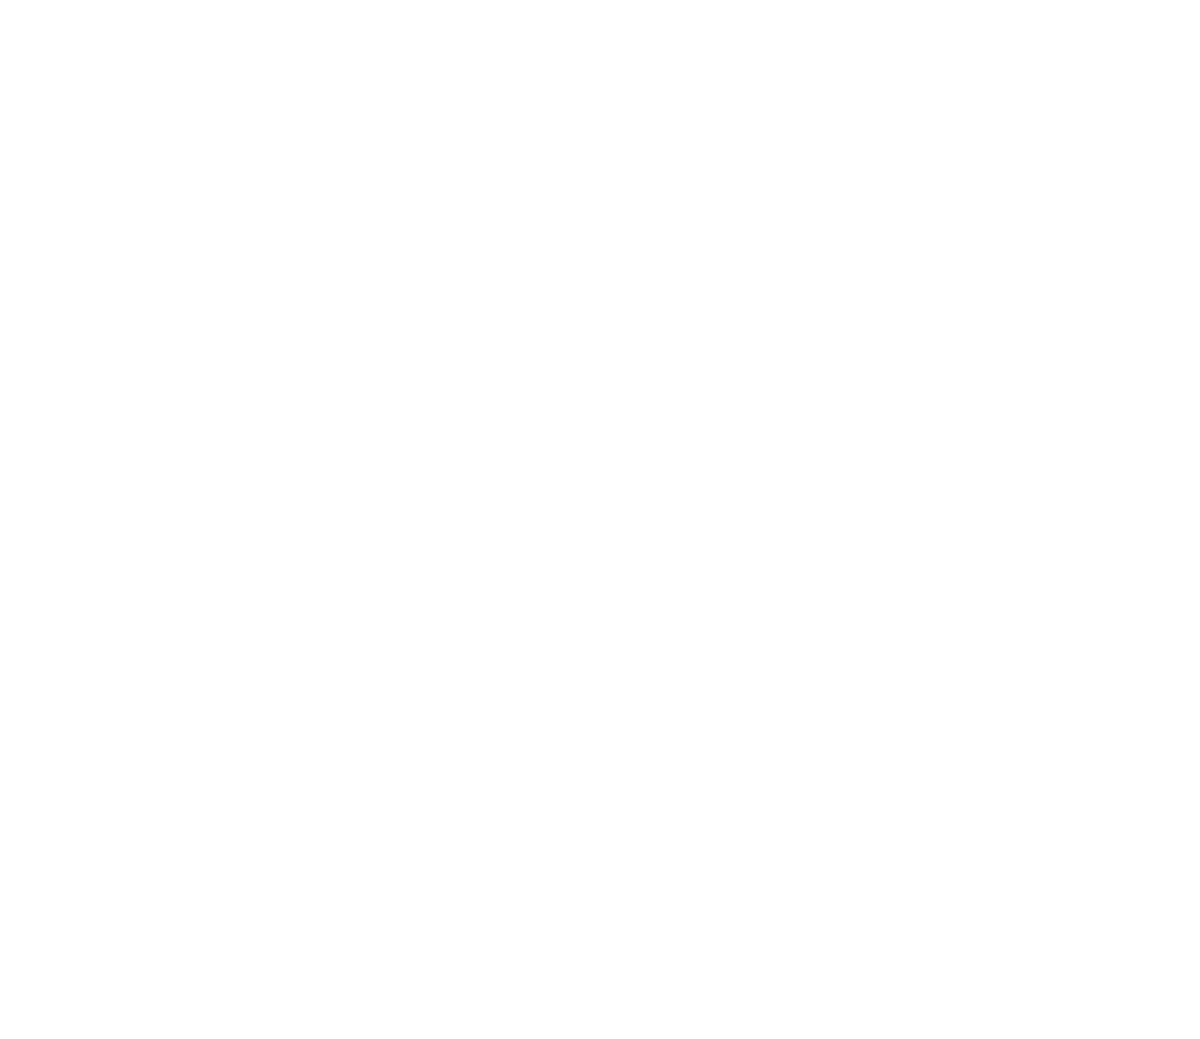 Upside Down Triangle 3